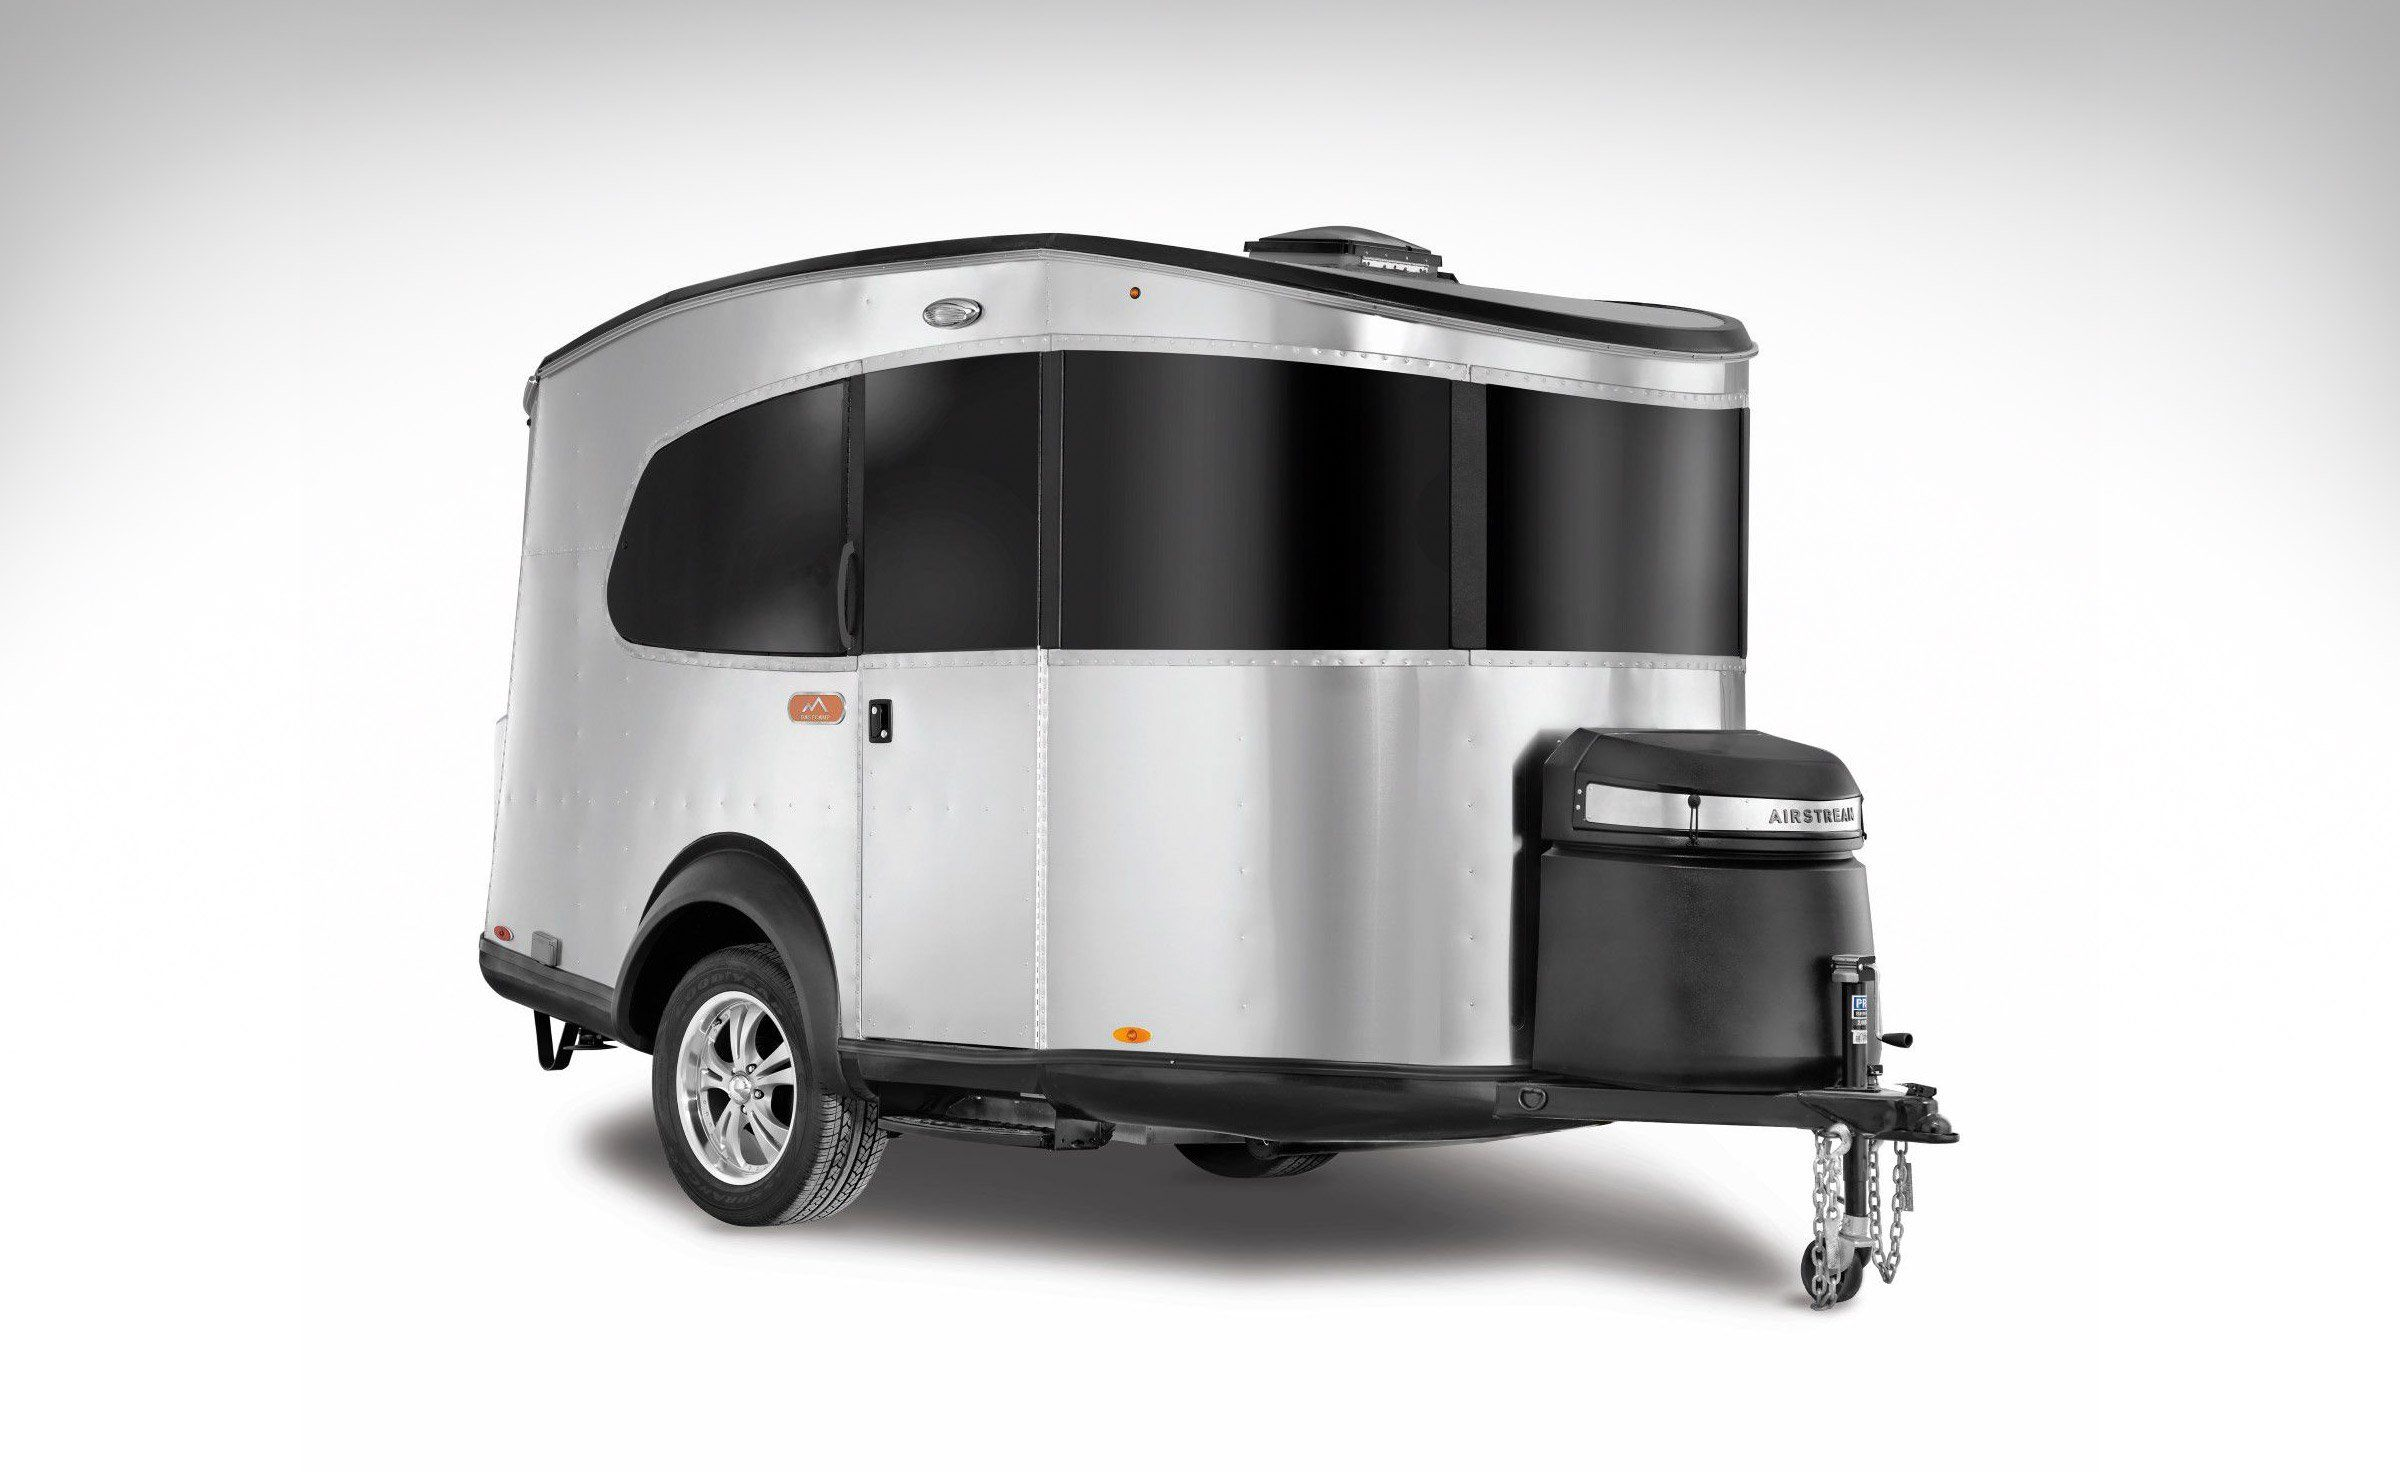 Airstream Basecamp Trailer Airstream basecamp for sale